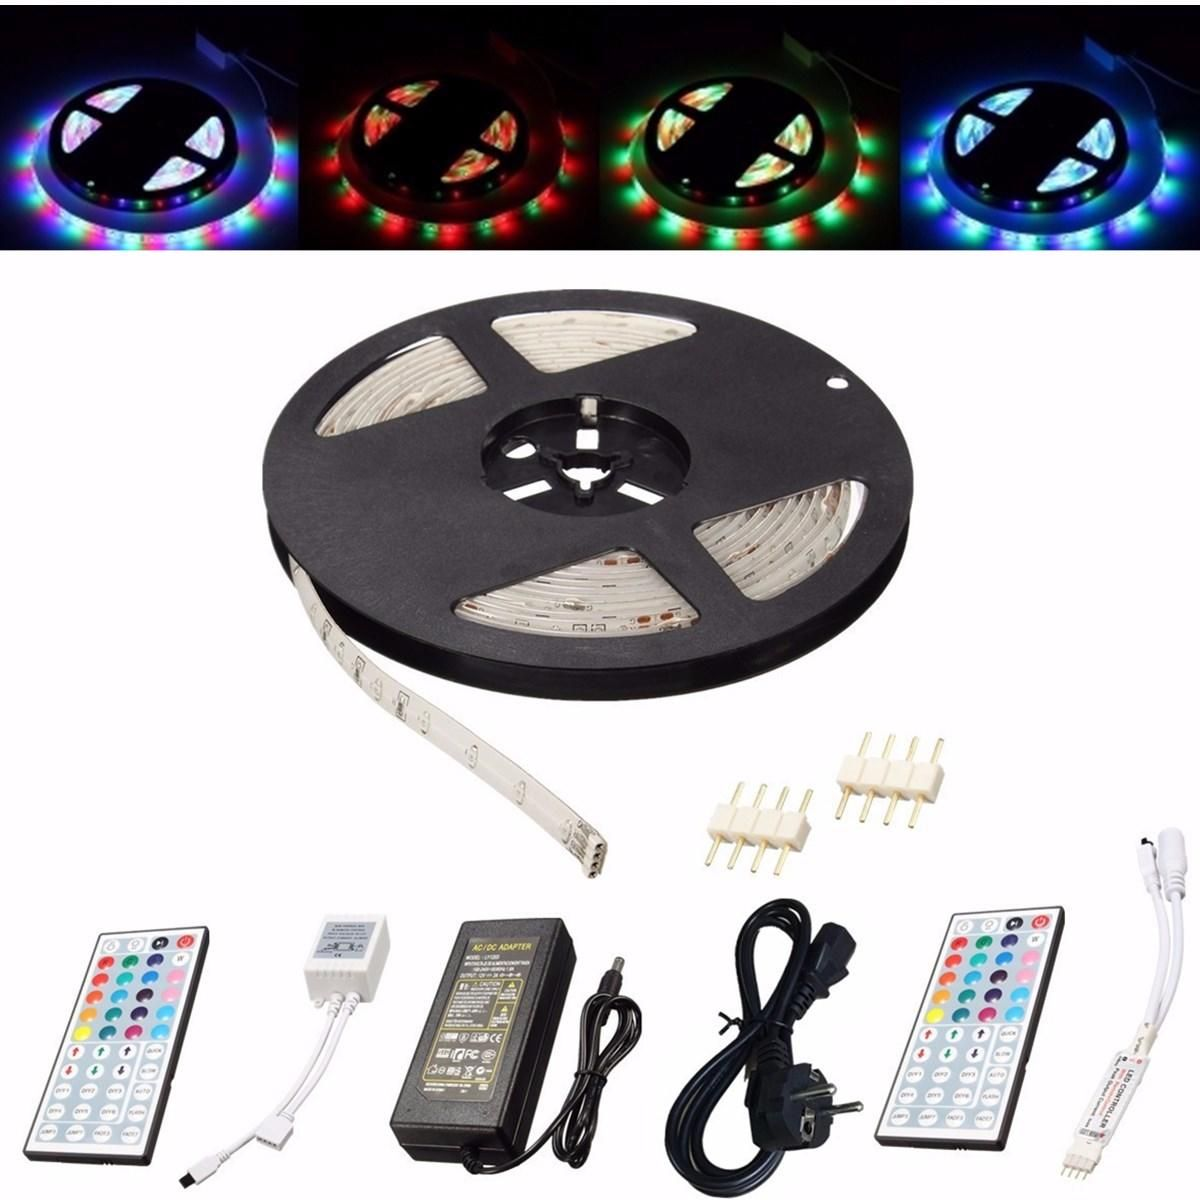 Objective Led Strip Light Led Pir Flexible Lamp Strip 2835 Smd Motion Sensor Lamp Bed Cabinet Stairs Bar Dimmable 5v Backlight Tv Light Led Strips